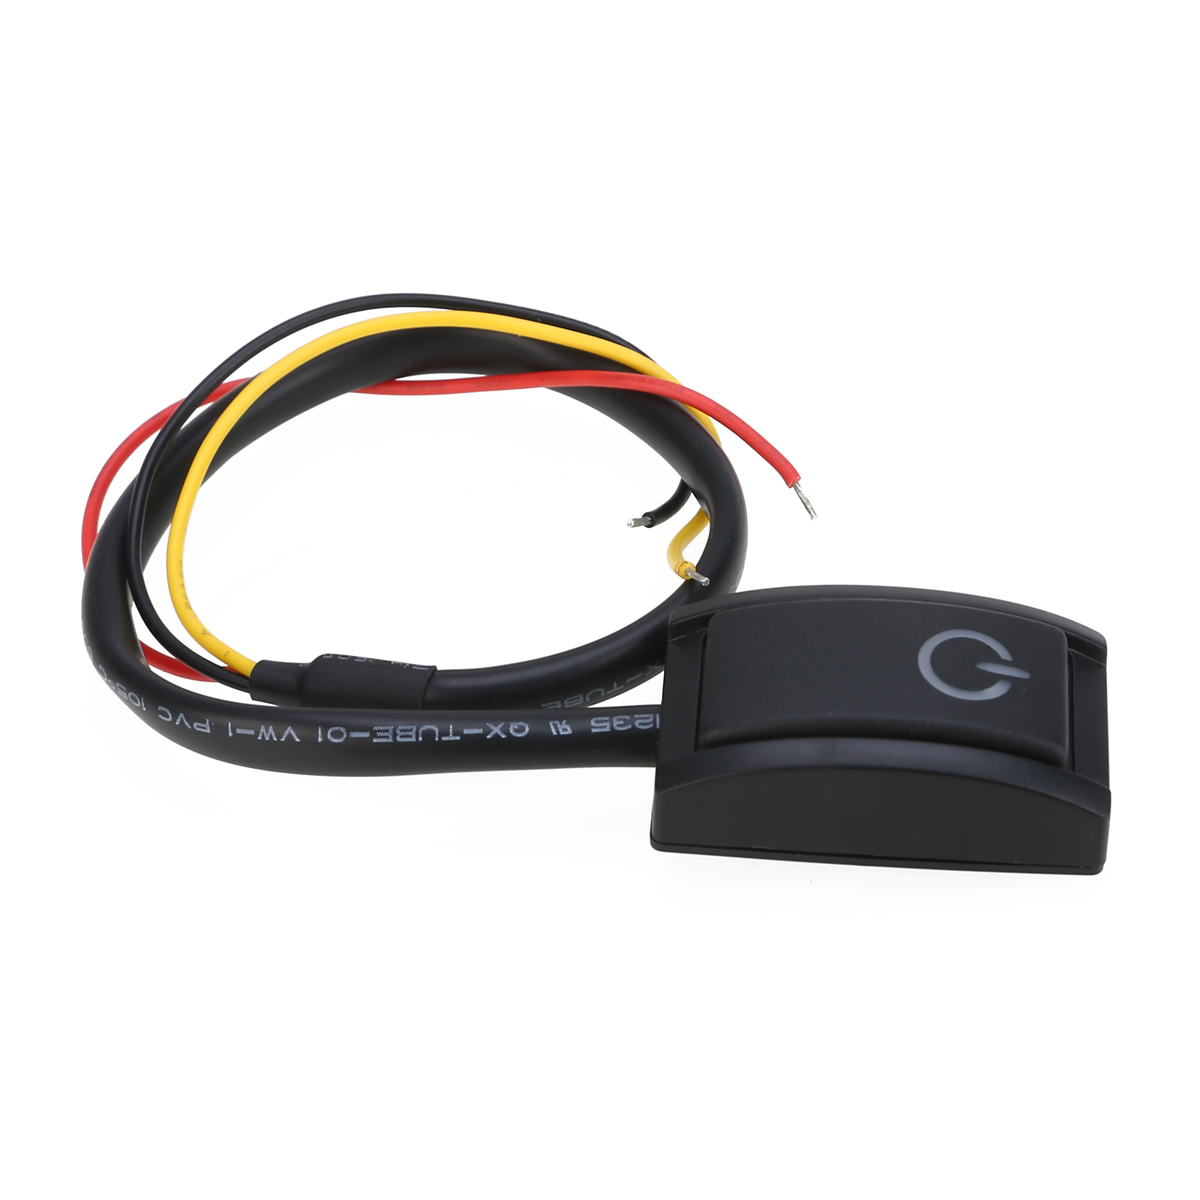 DC 12V 200mA 2.4W Paste Type LED Light Power Push Button Switch Self Locking Type On-off  Switches For Car Motorcycle